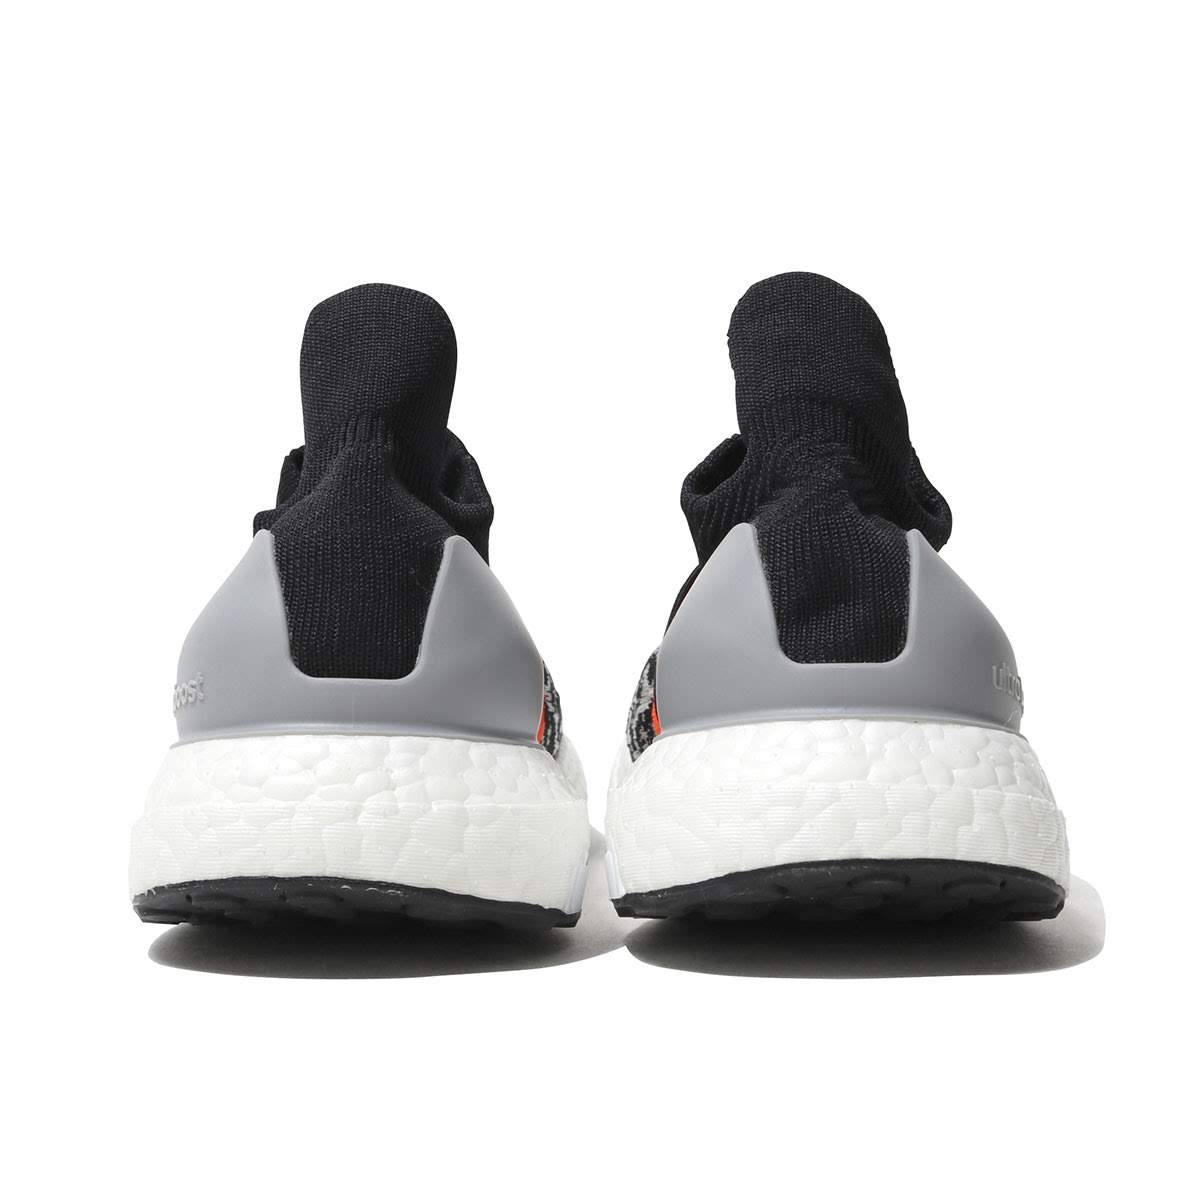 check out 14be4 a0663 adidas UltraBOOST X 3D (Adidas ultra boost X 3D) CORE BLACK/CORE  WHITE/SOLAR RED 19SS-I